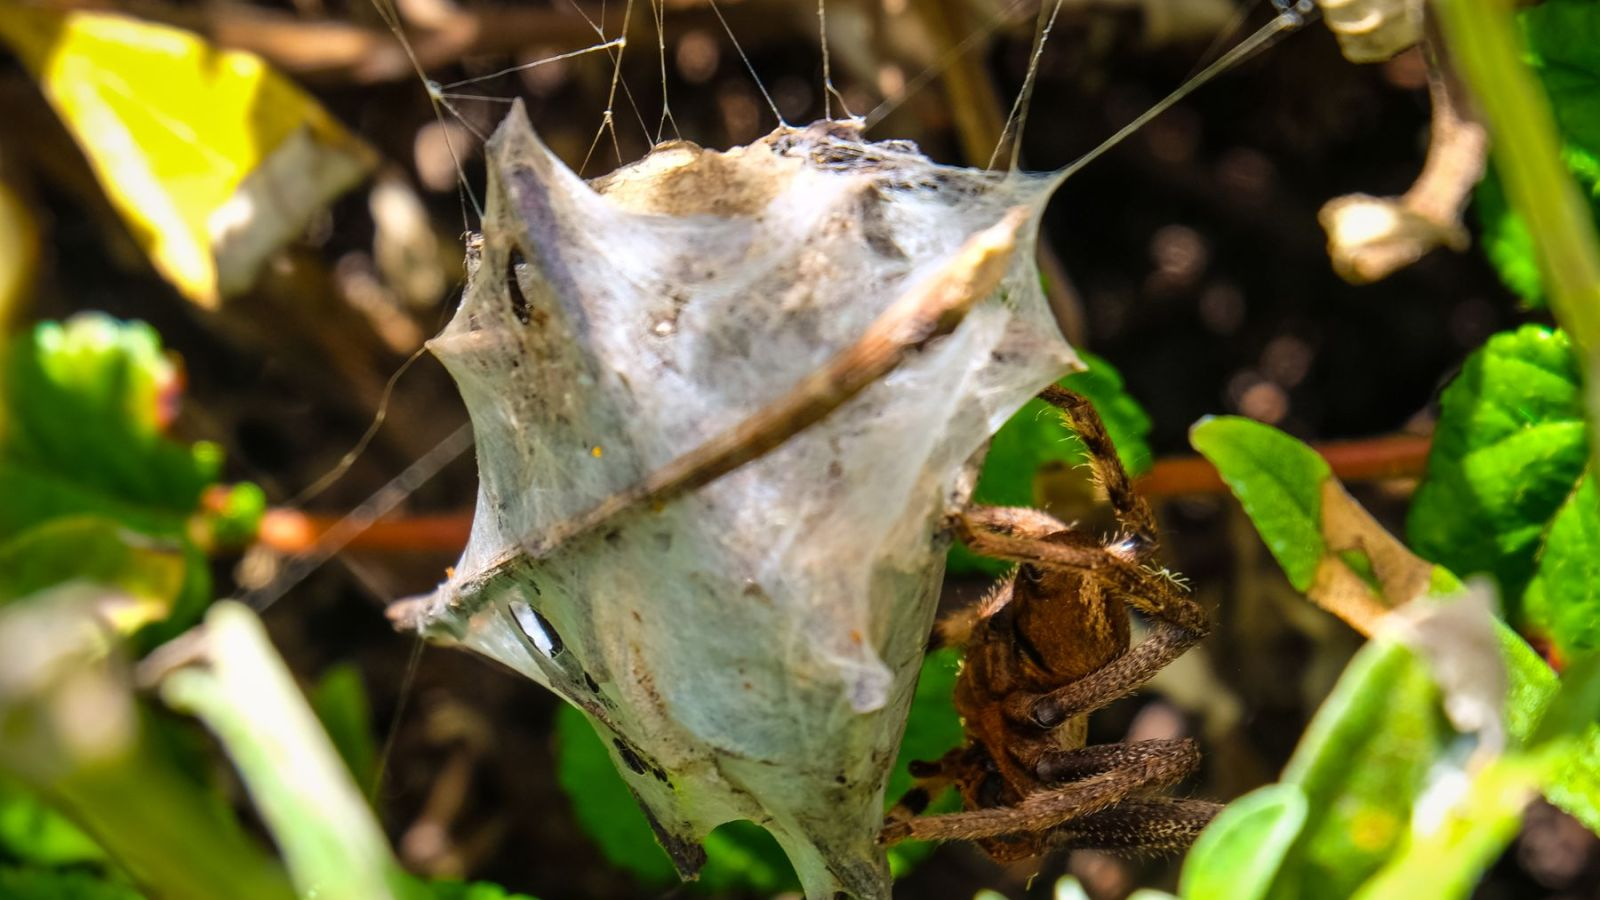 a photo of a huntsman spider egg cocoon on the otter trail in south africa.